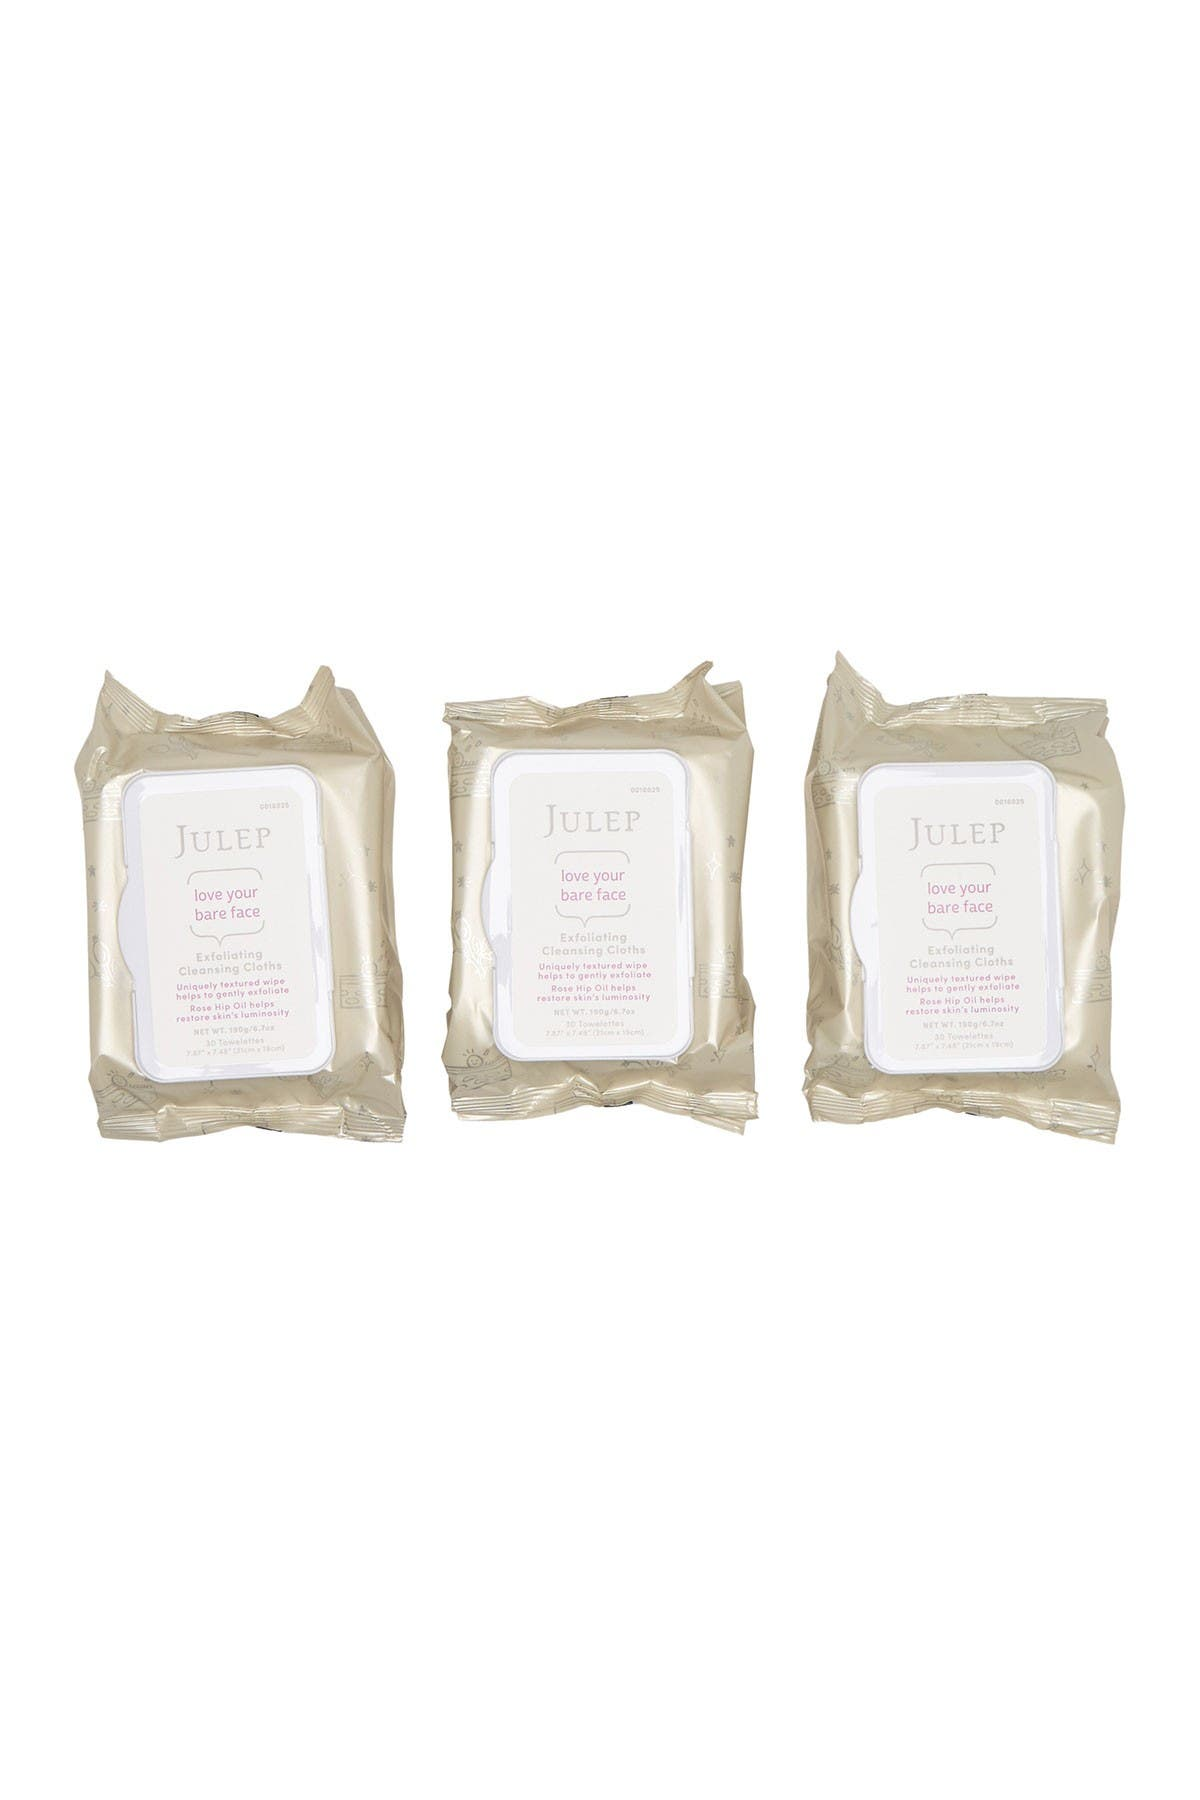 Bare Face Makeup Remover Wipes